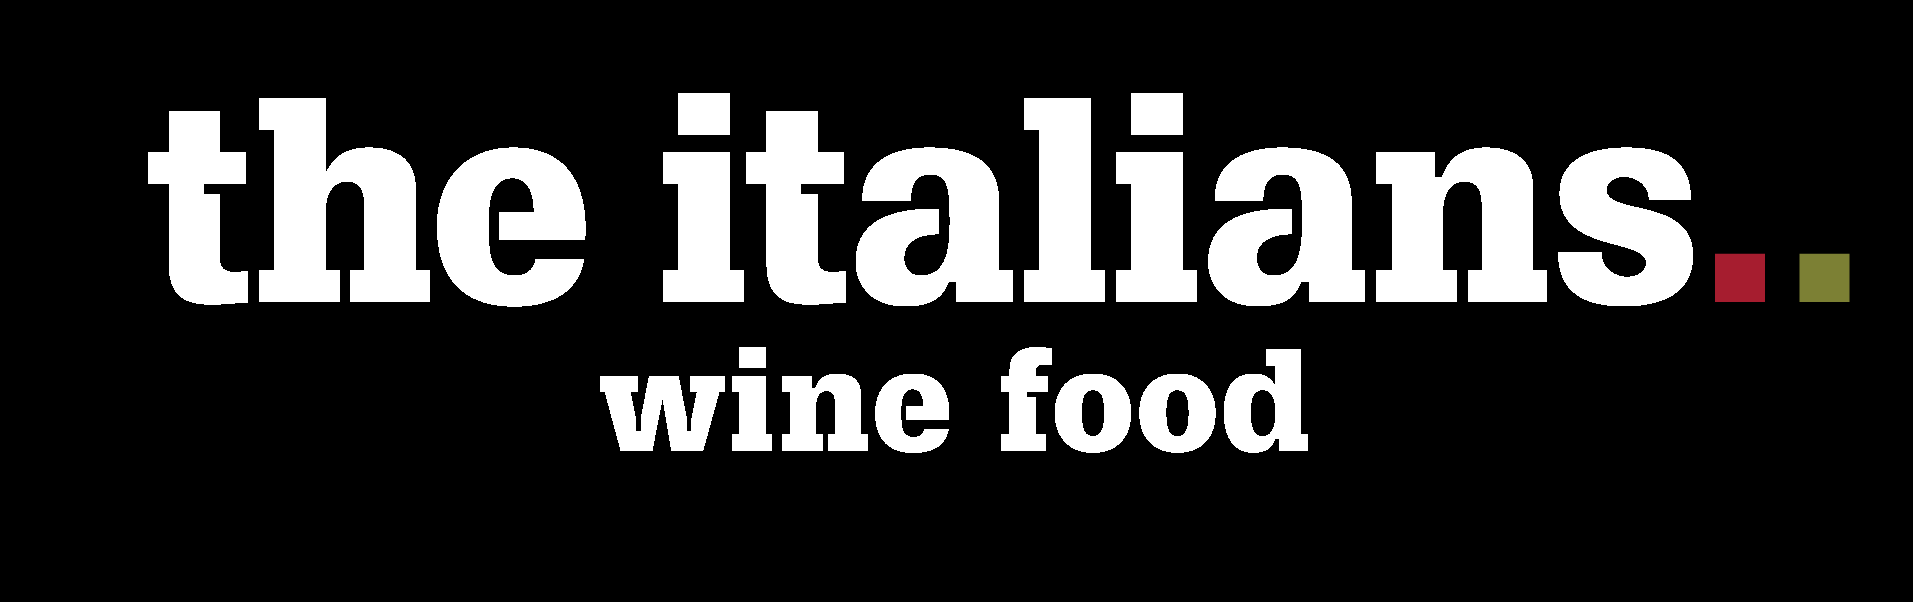 the italians wine food